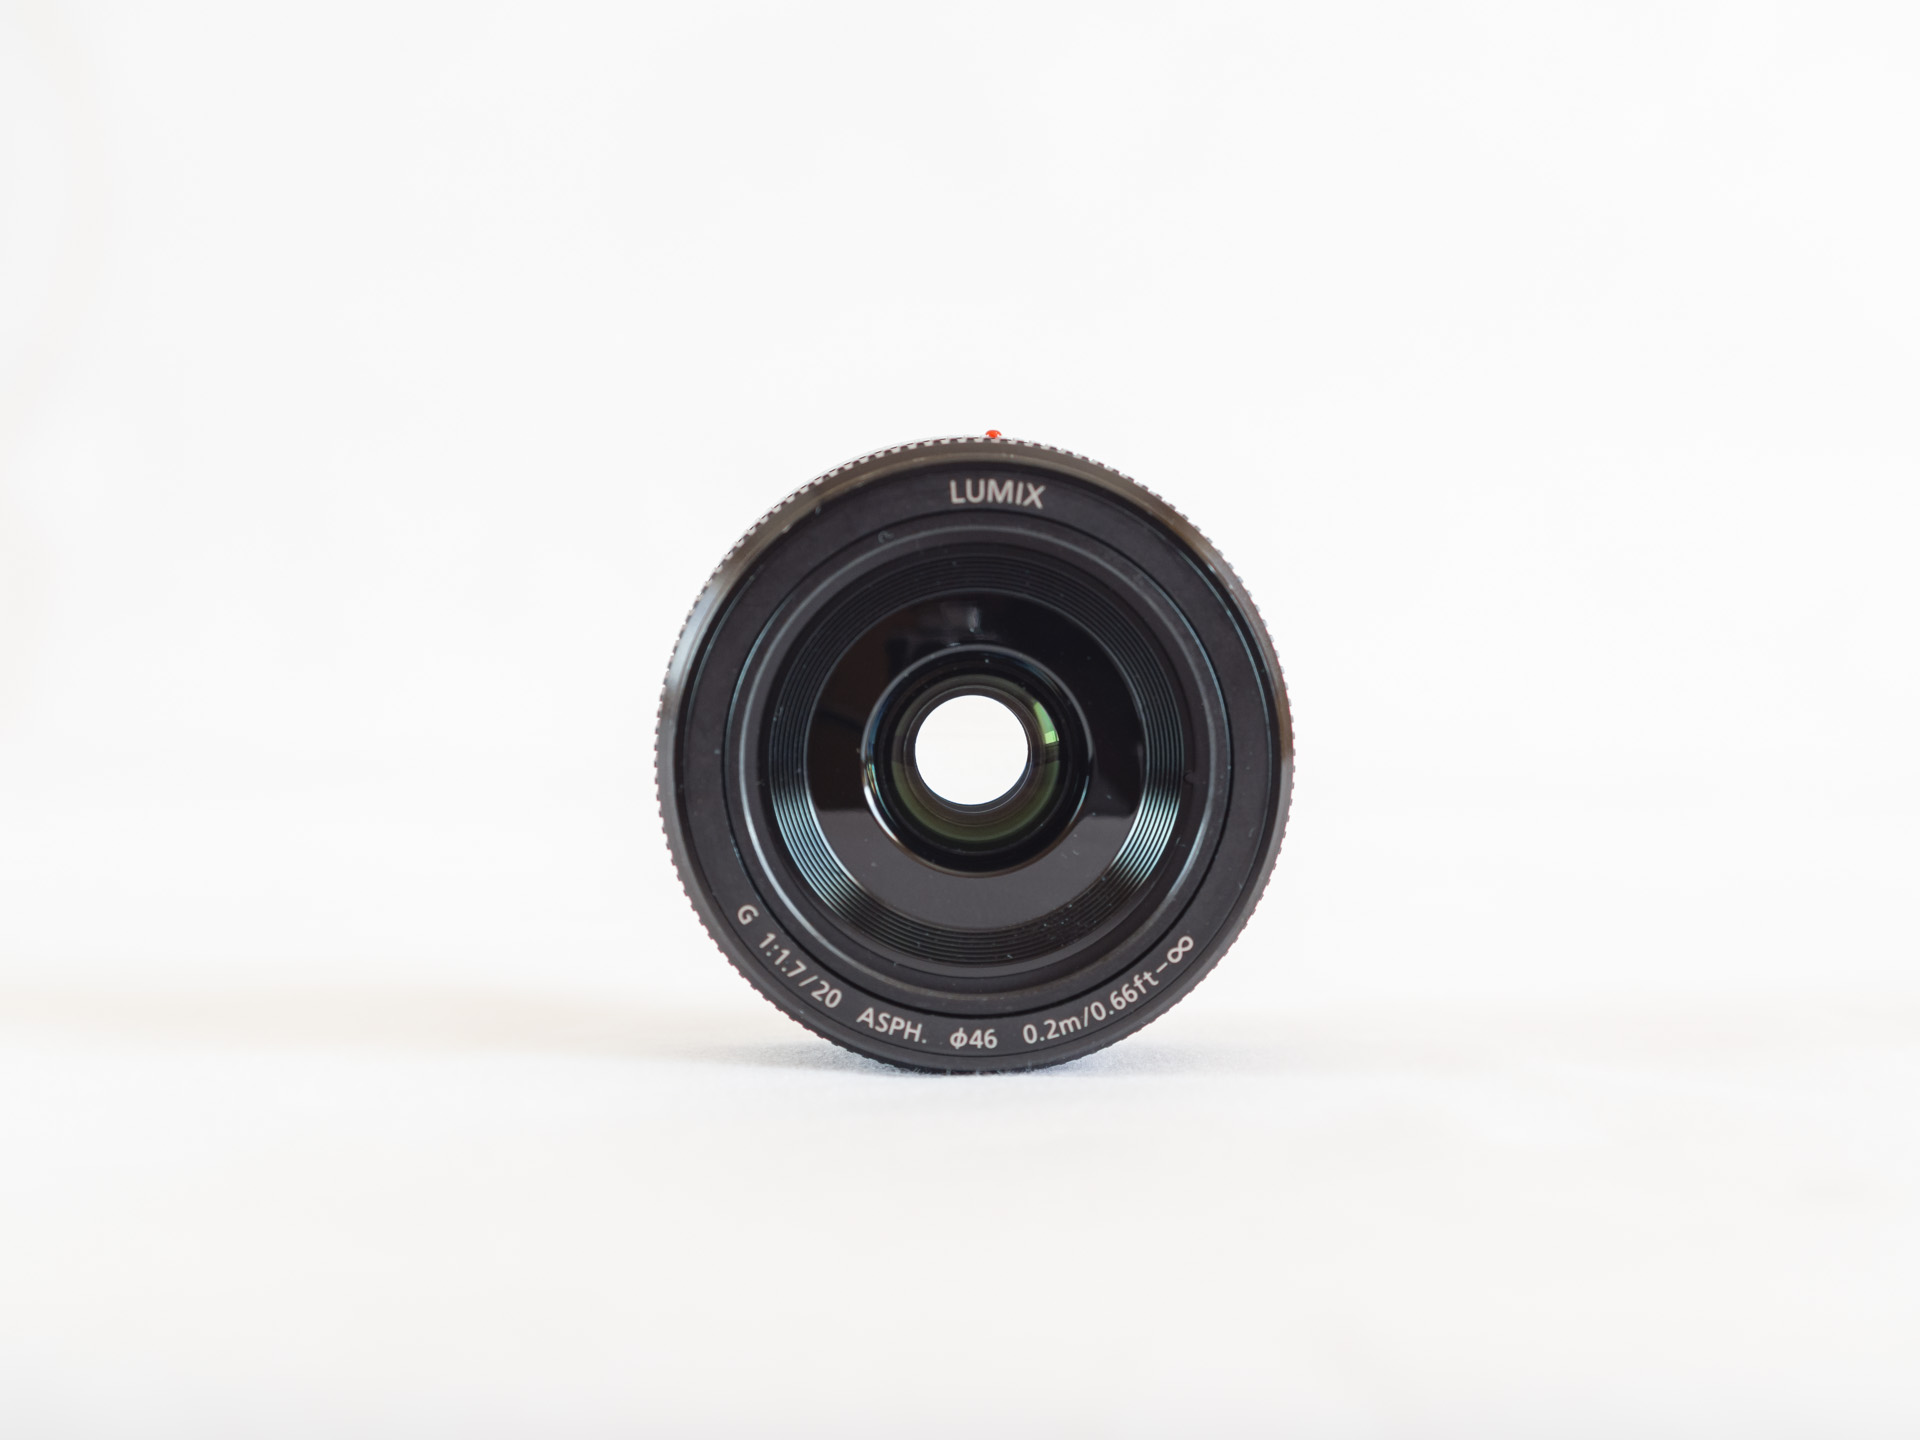 Panasonic 20mm Pancake Lens